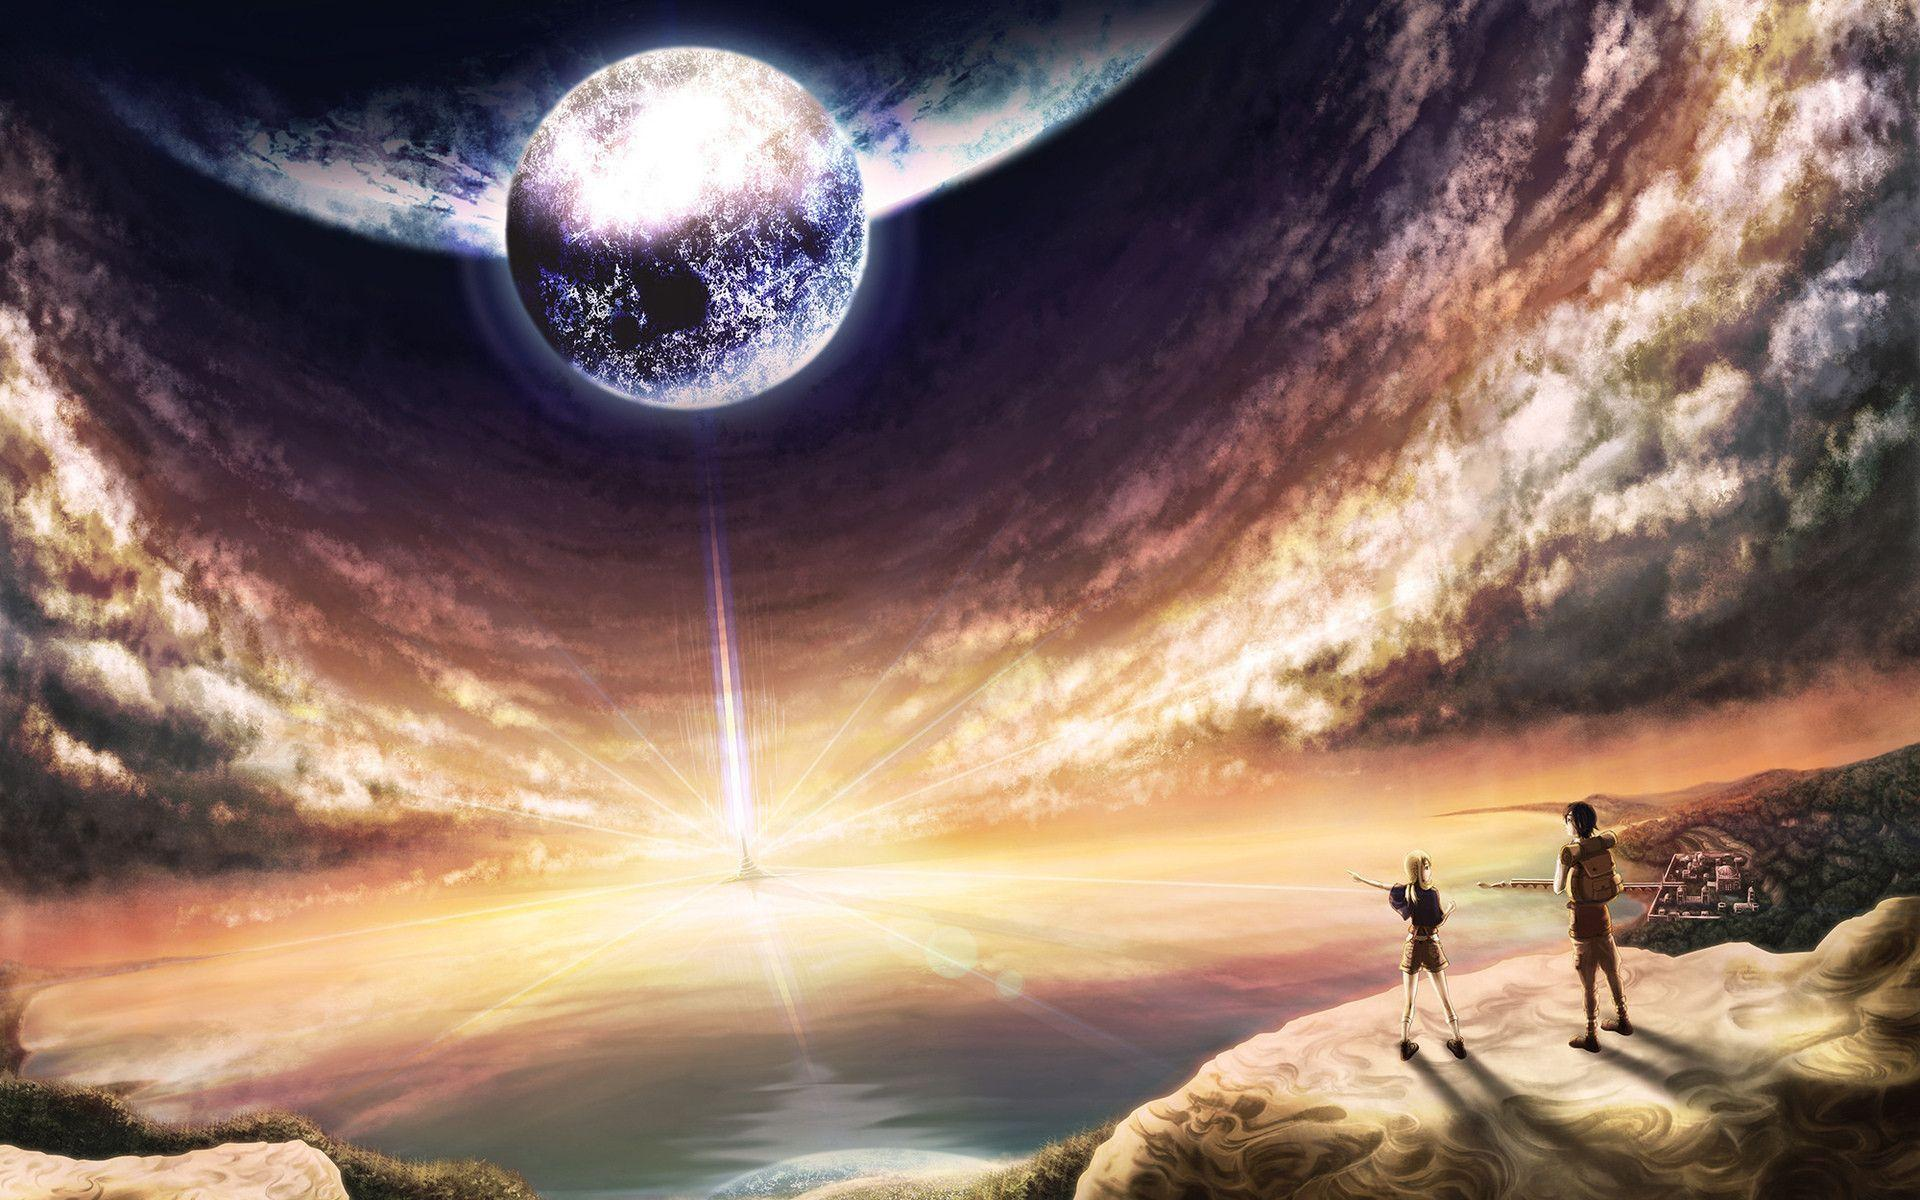 Love The End Wallpaper : Anime Fantasy Wallpapers - Wallpaper cave